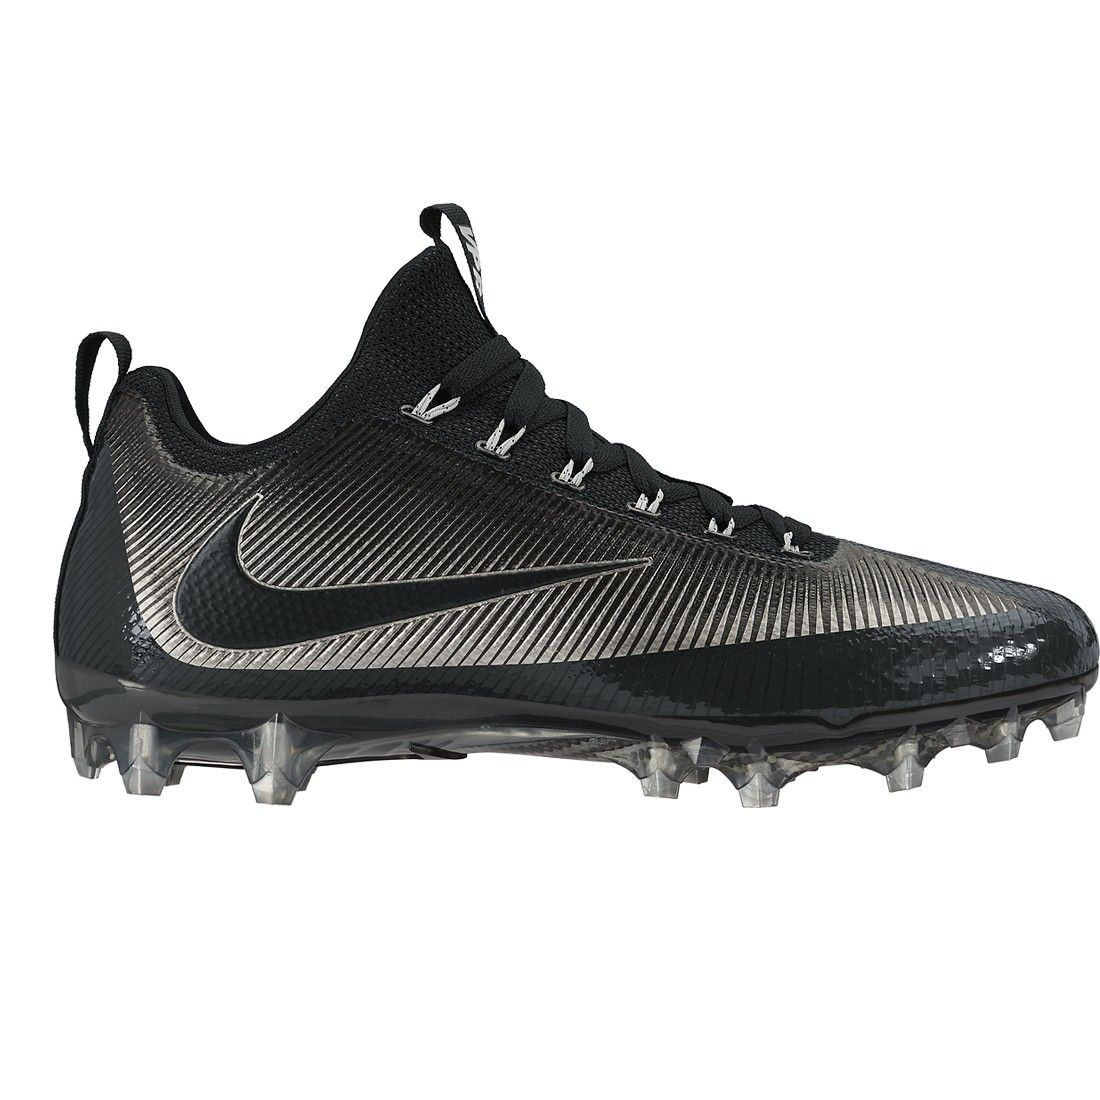 663abd2c968c Nike Vapor Untouchable Pro in Black Built for the Most Dynamic Players on  the Field Flywire